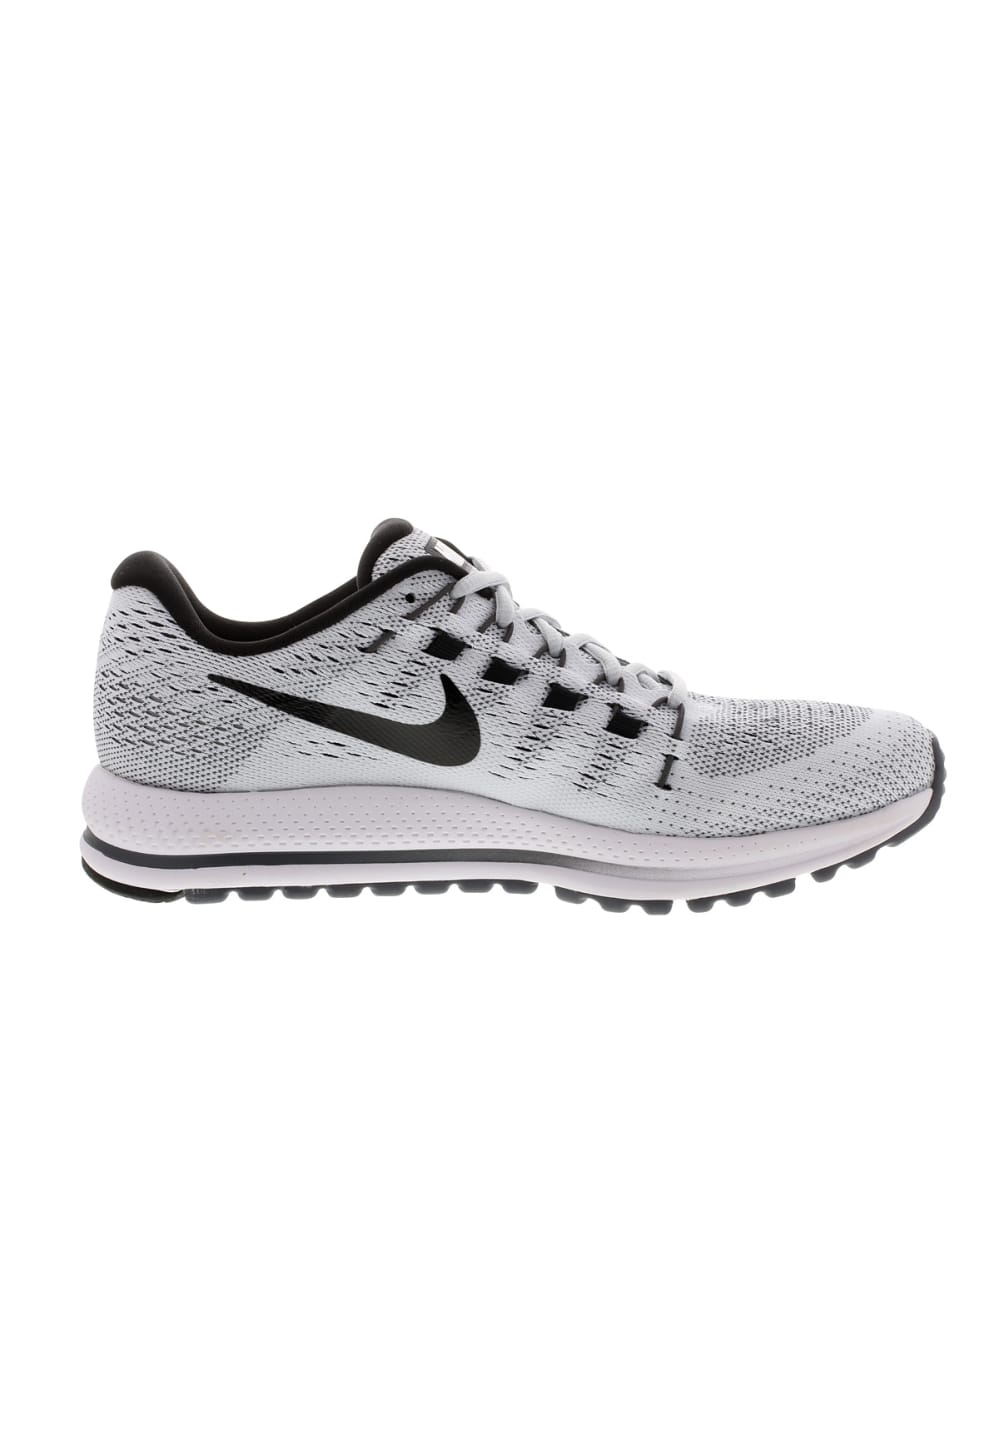 42e07d3aedd Next. -70%. Nike. Air Zoom Vomero 12 TB - Running shoes for Women. Regular  ...